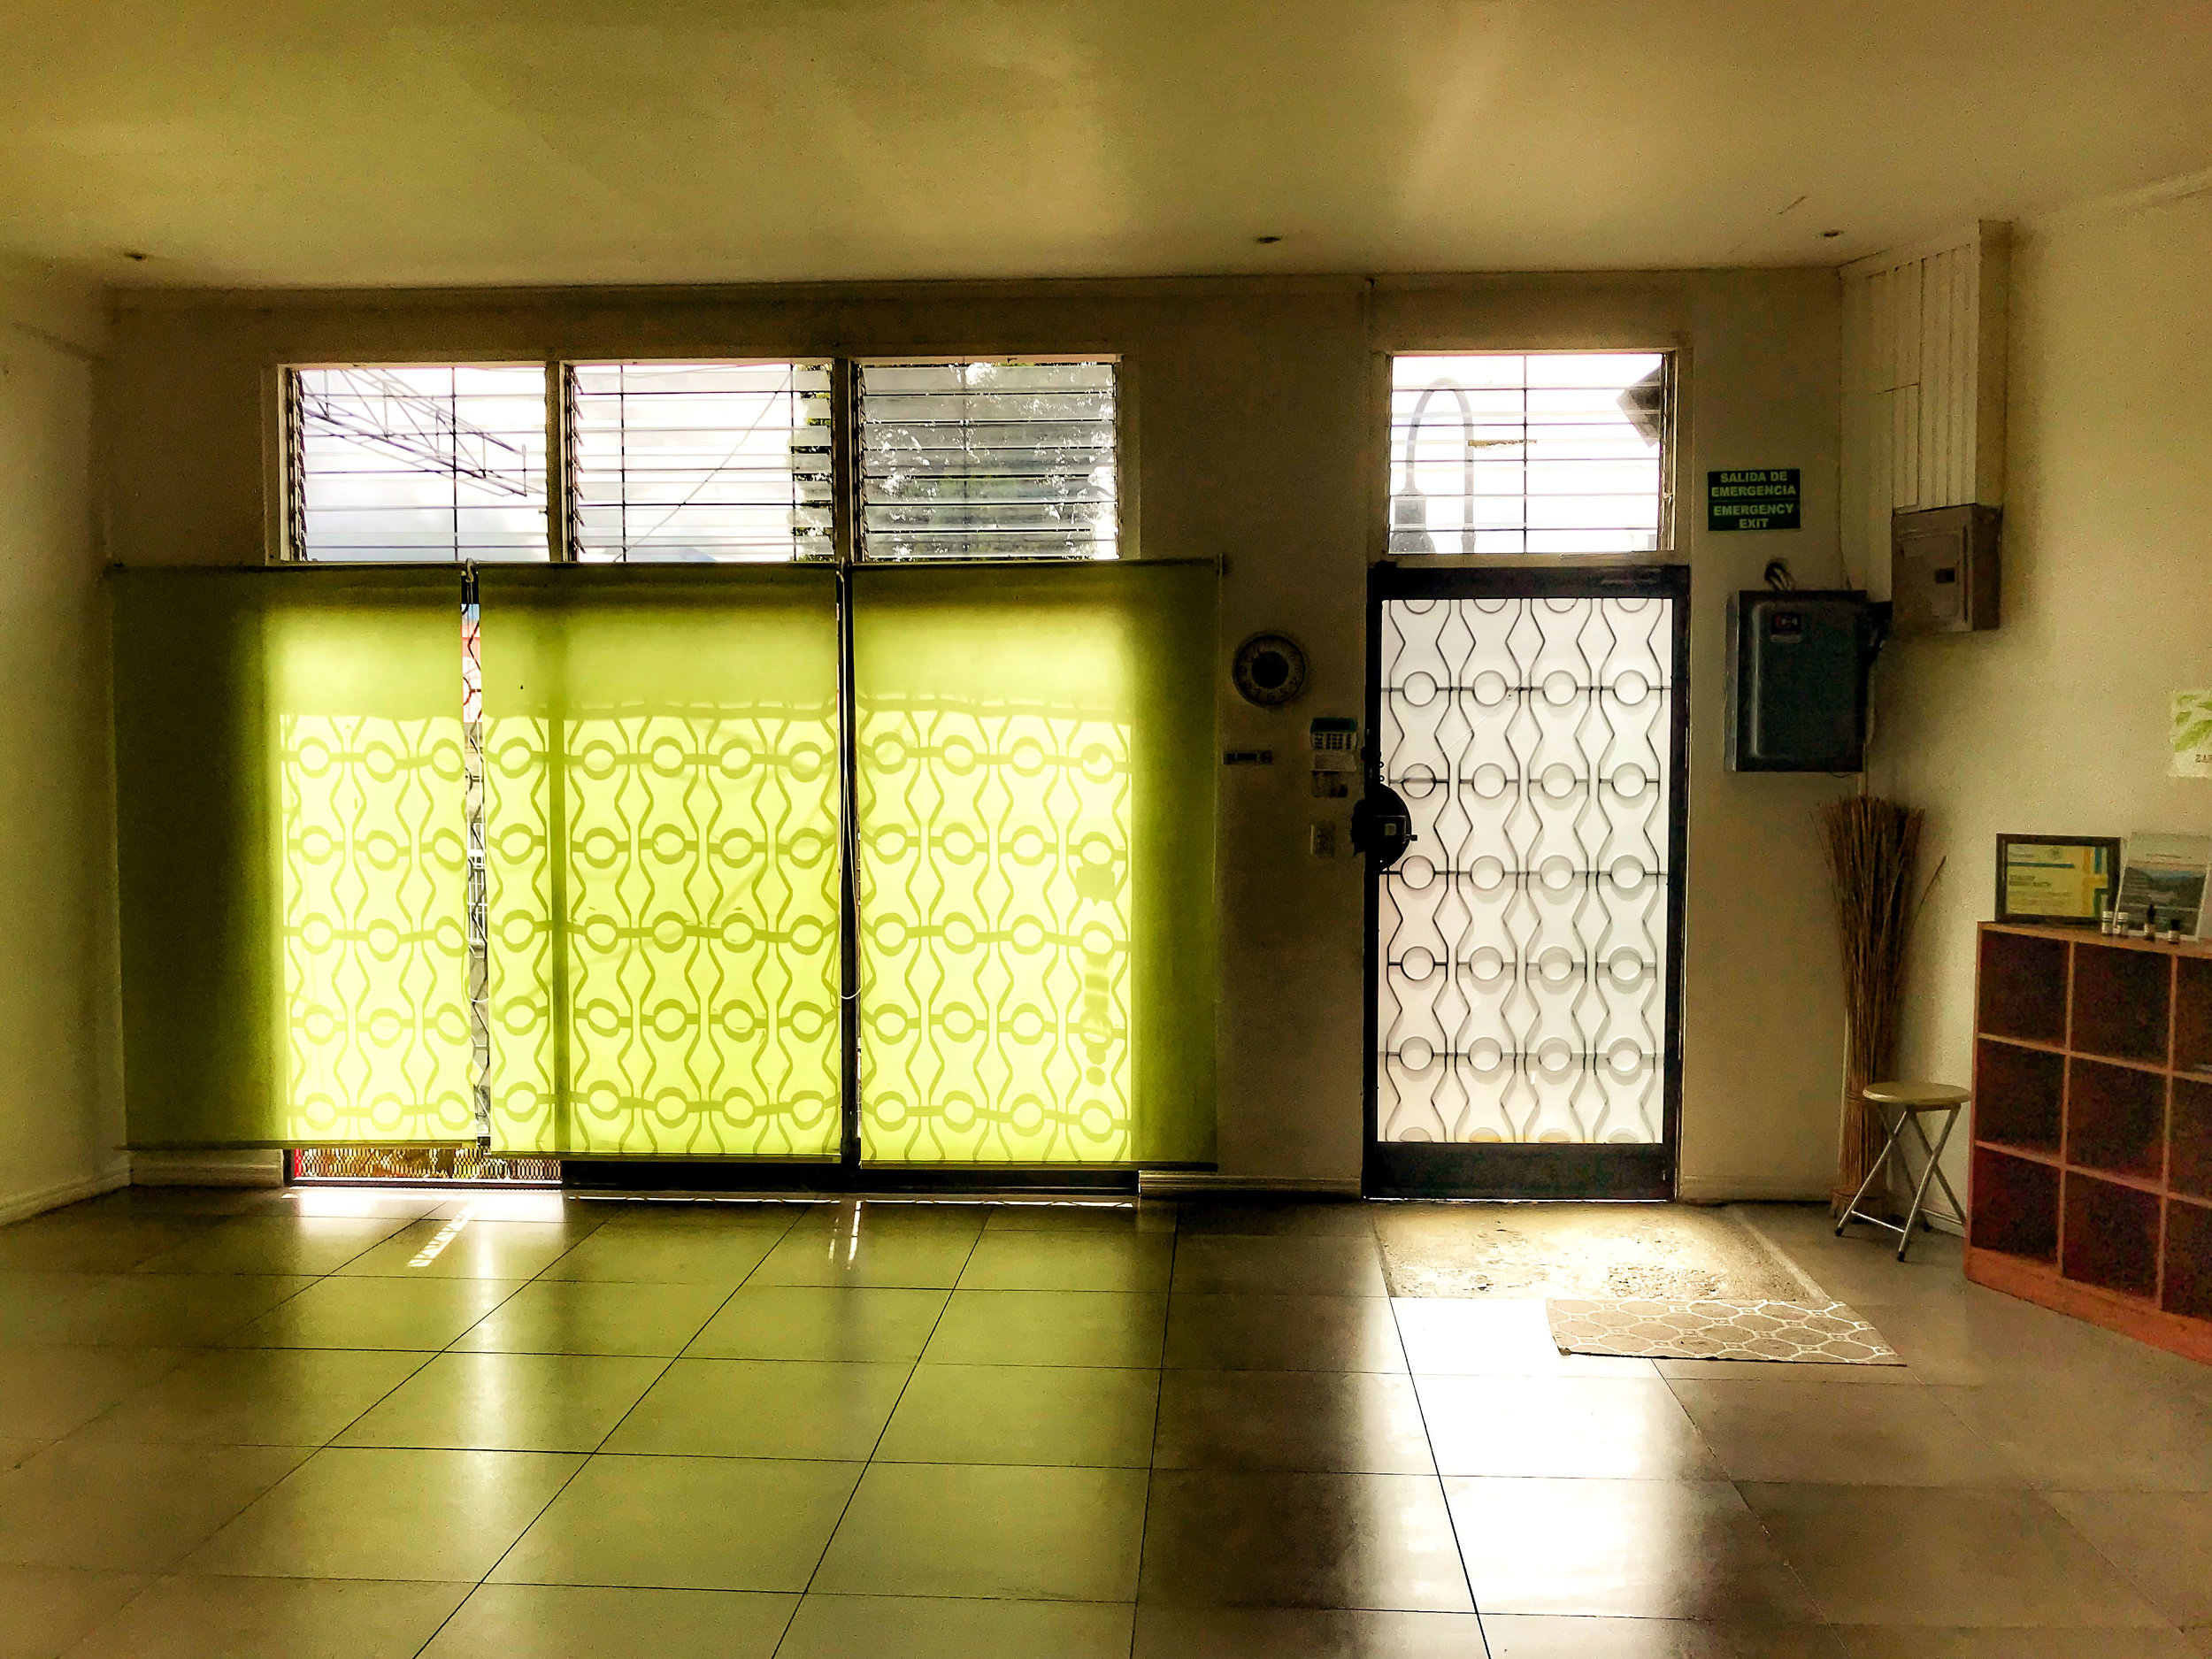 Costa Rica Doors - danscape - iPhone-6.JPG